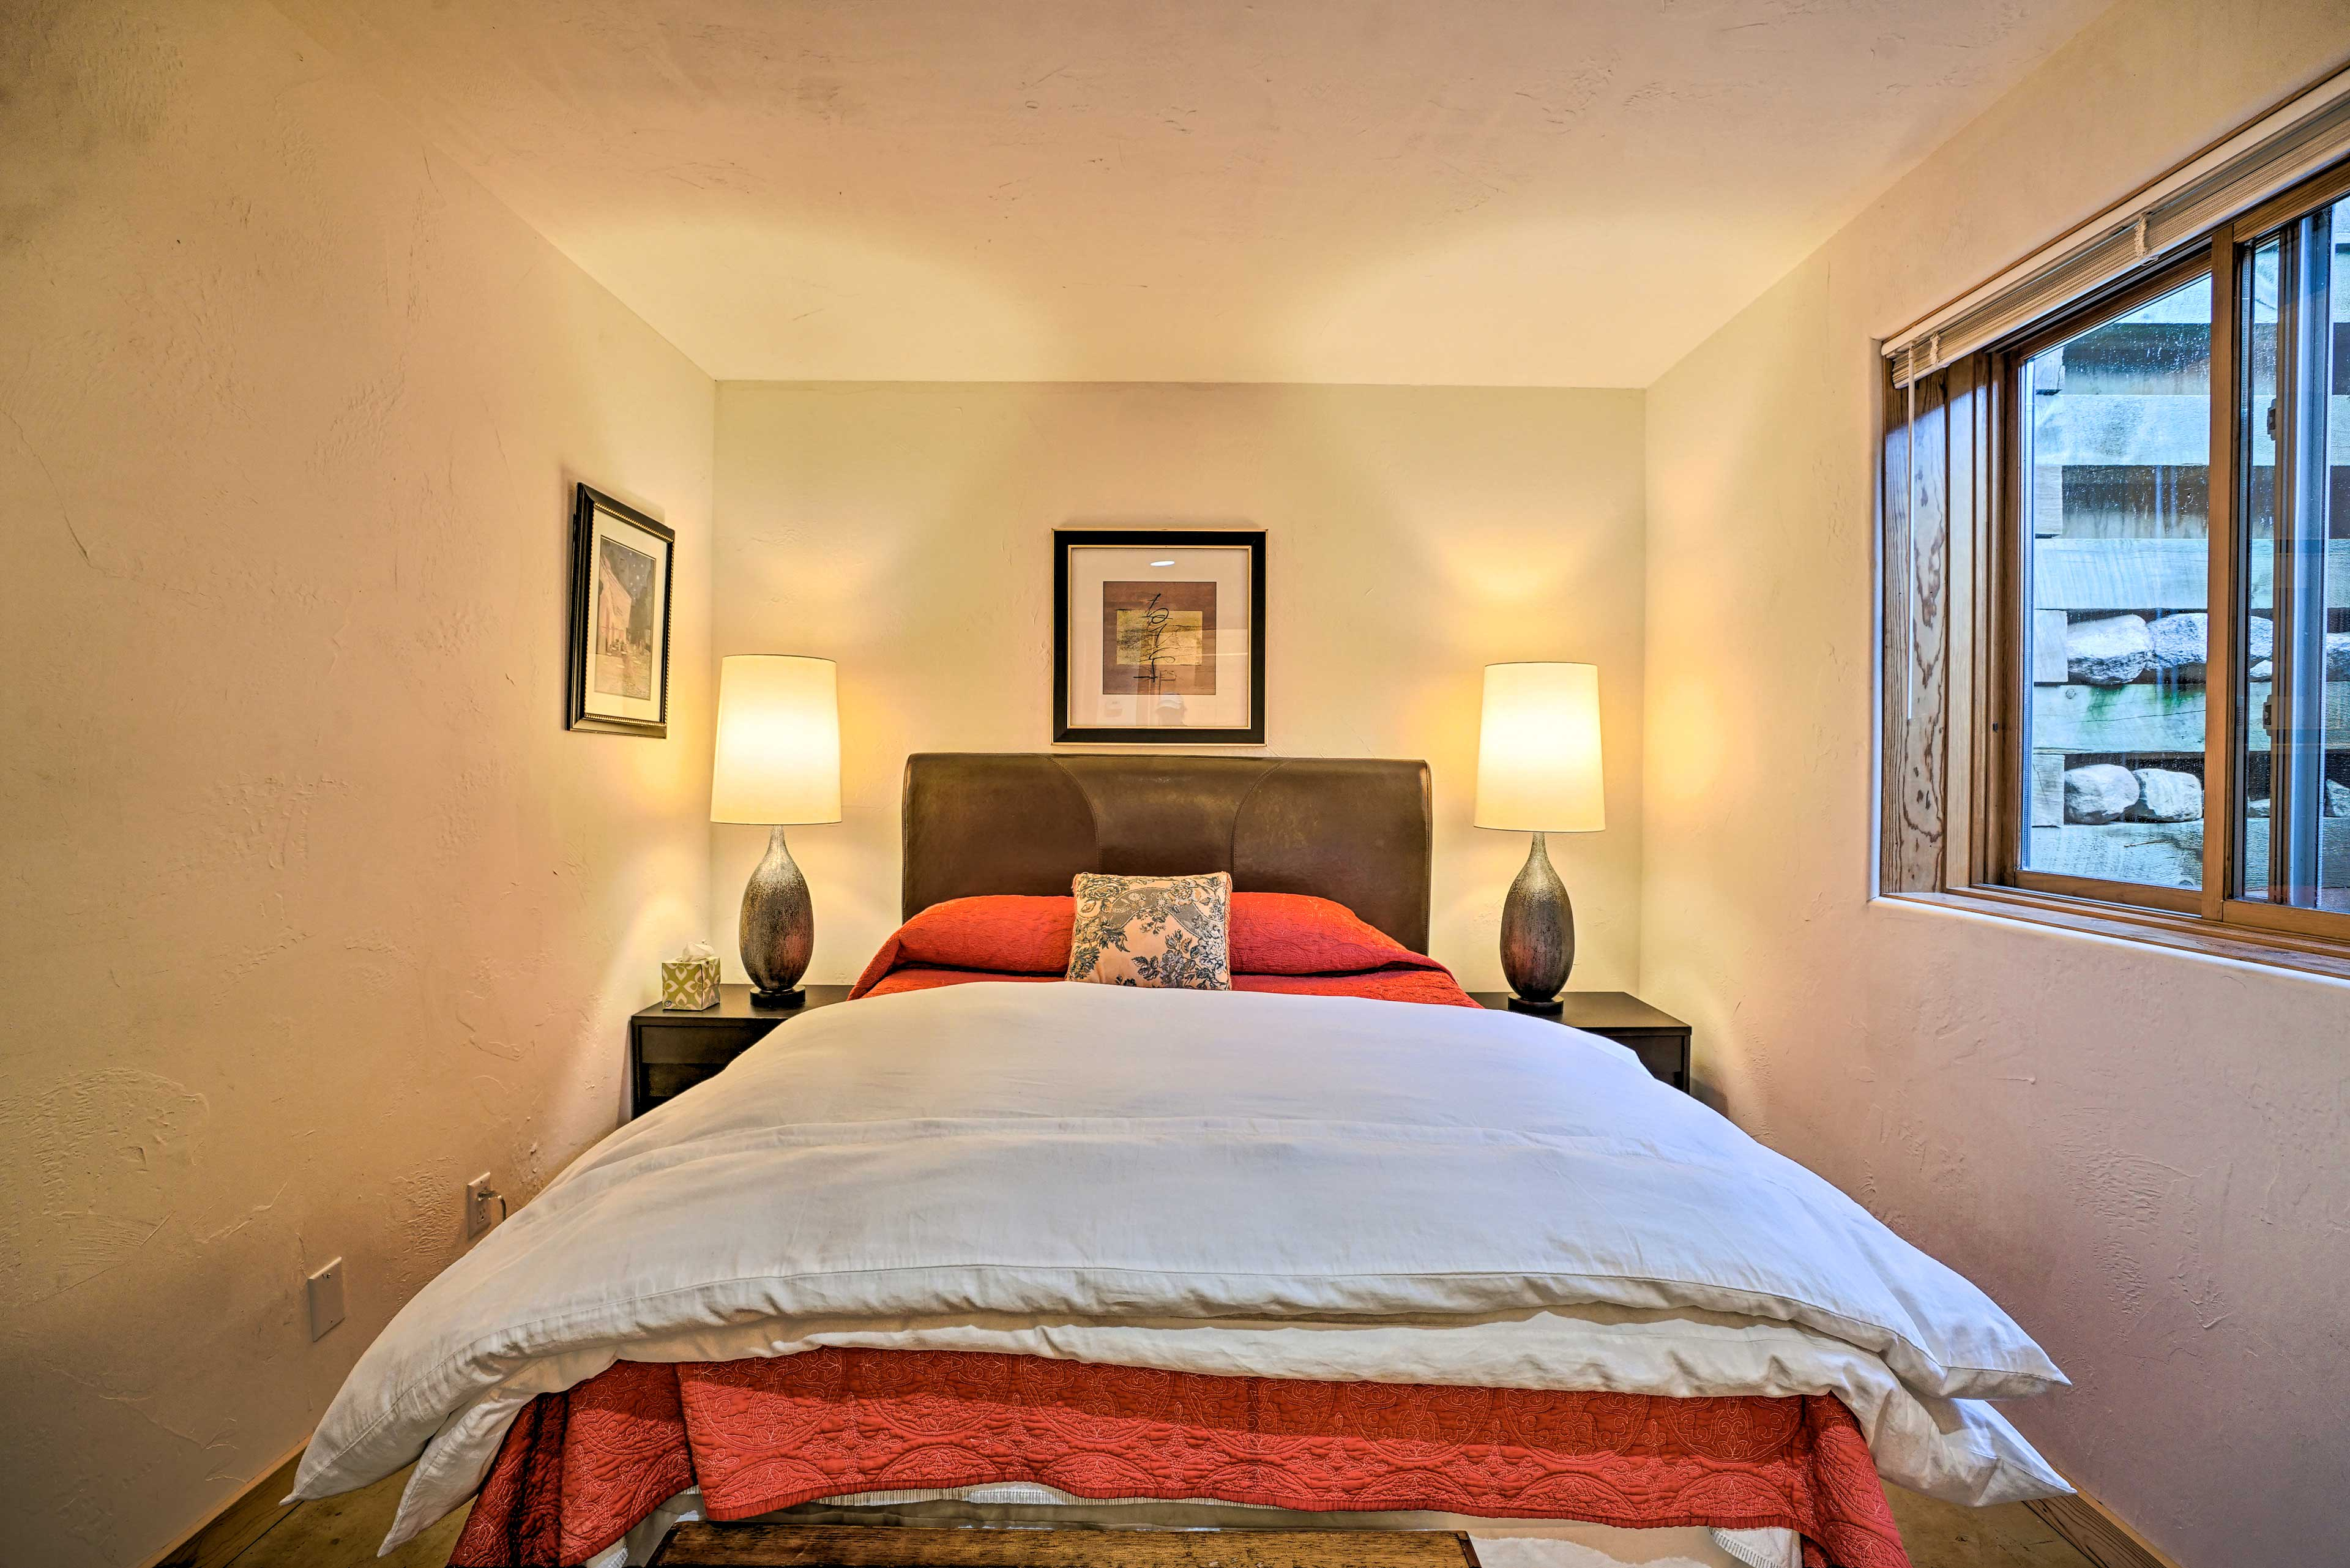 The master bedroom is awaiting your stay!